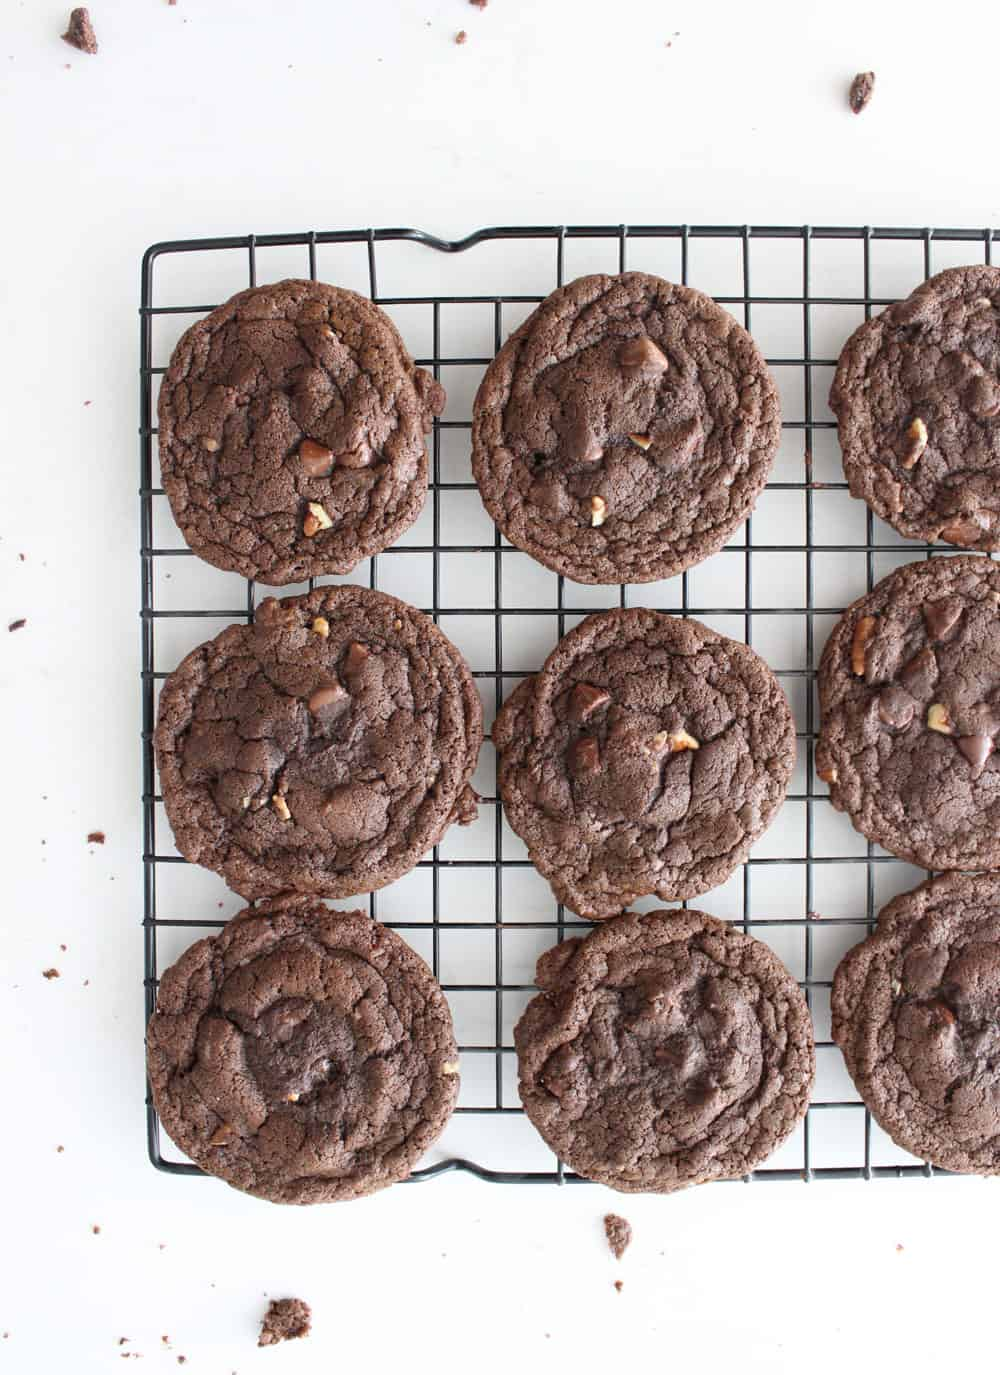 Double chocolate chip cookies lined up on a cooling rack on a white countertop